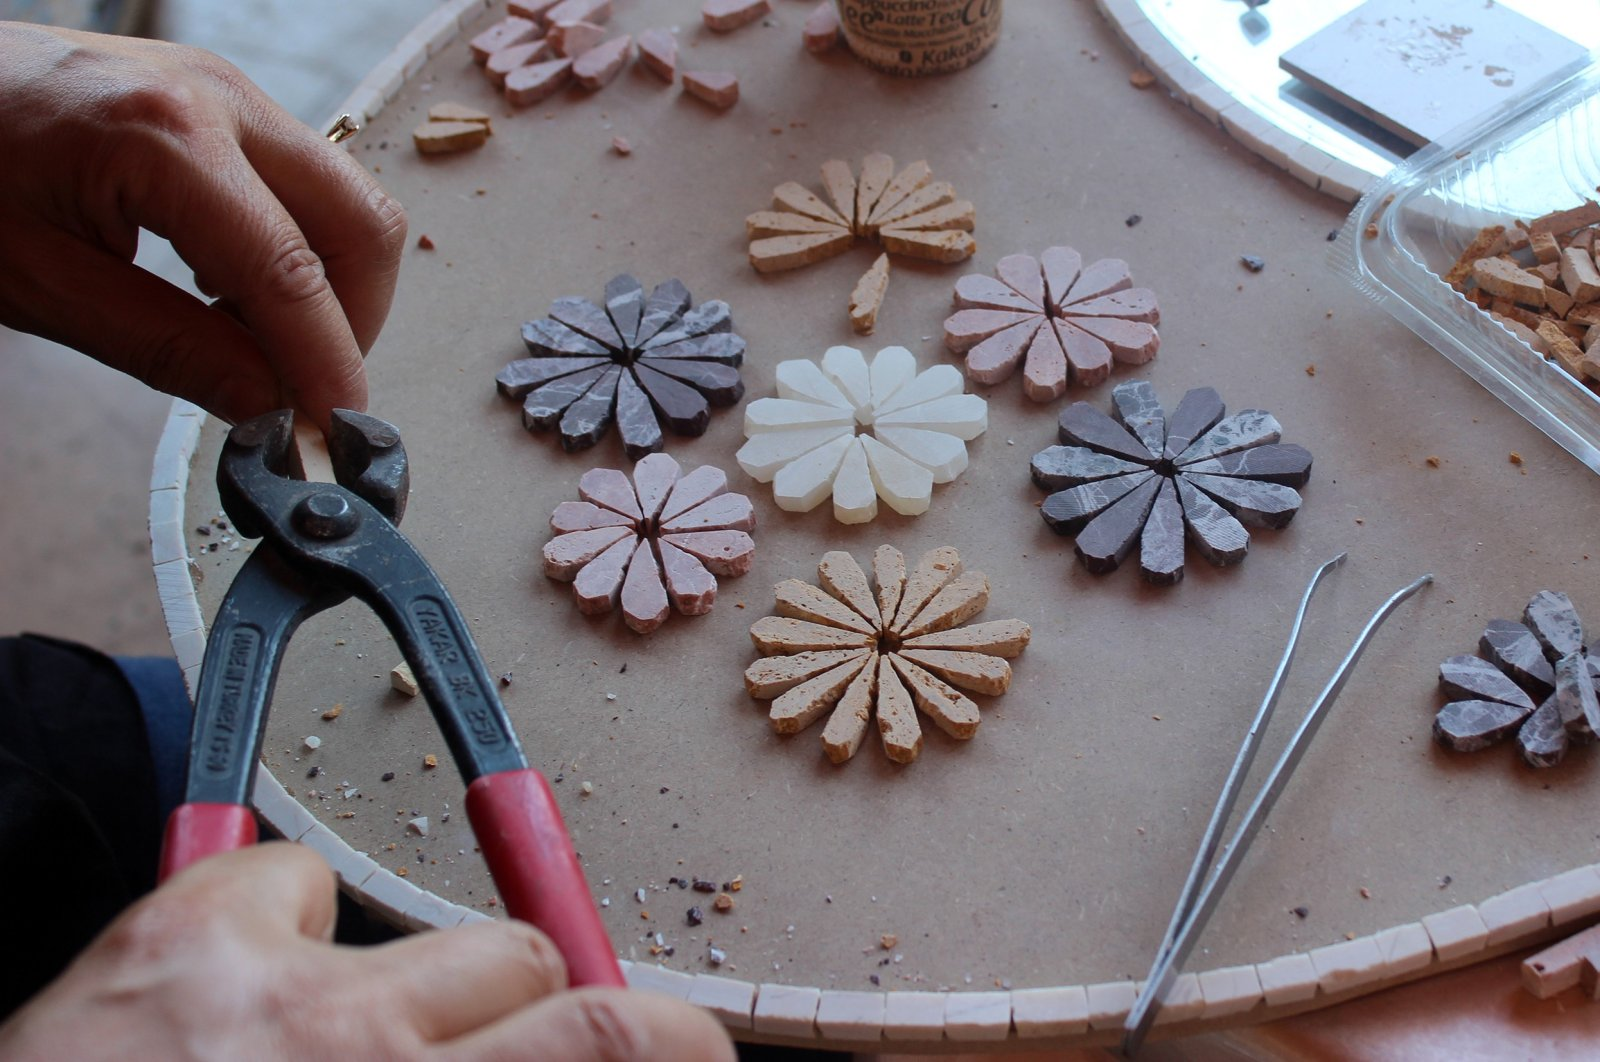 Mosaic masters make great efforts to produce mosaic souvenirs for EXPO visitors. (İHA PHOTO)